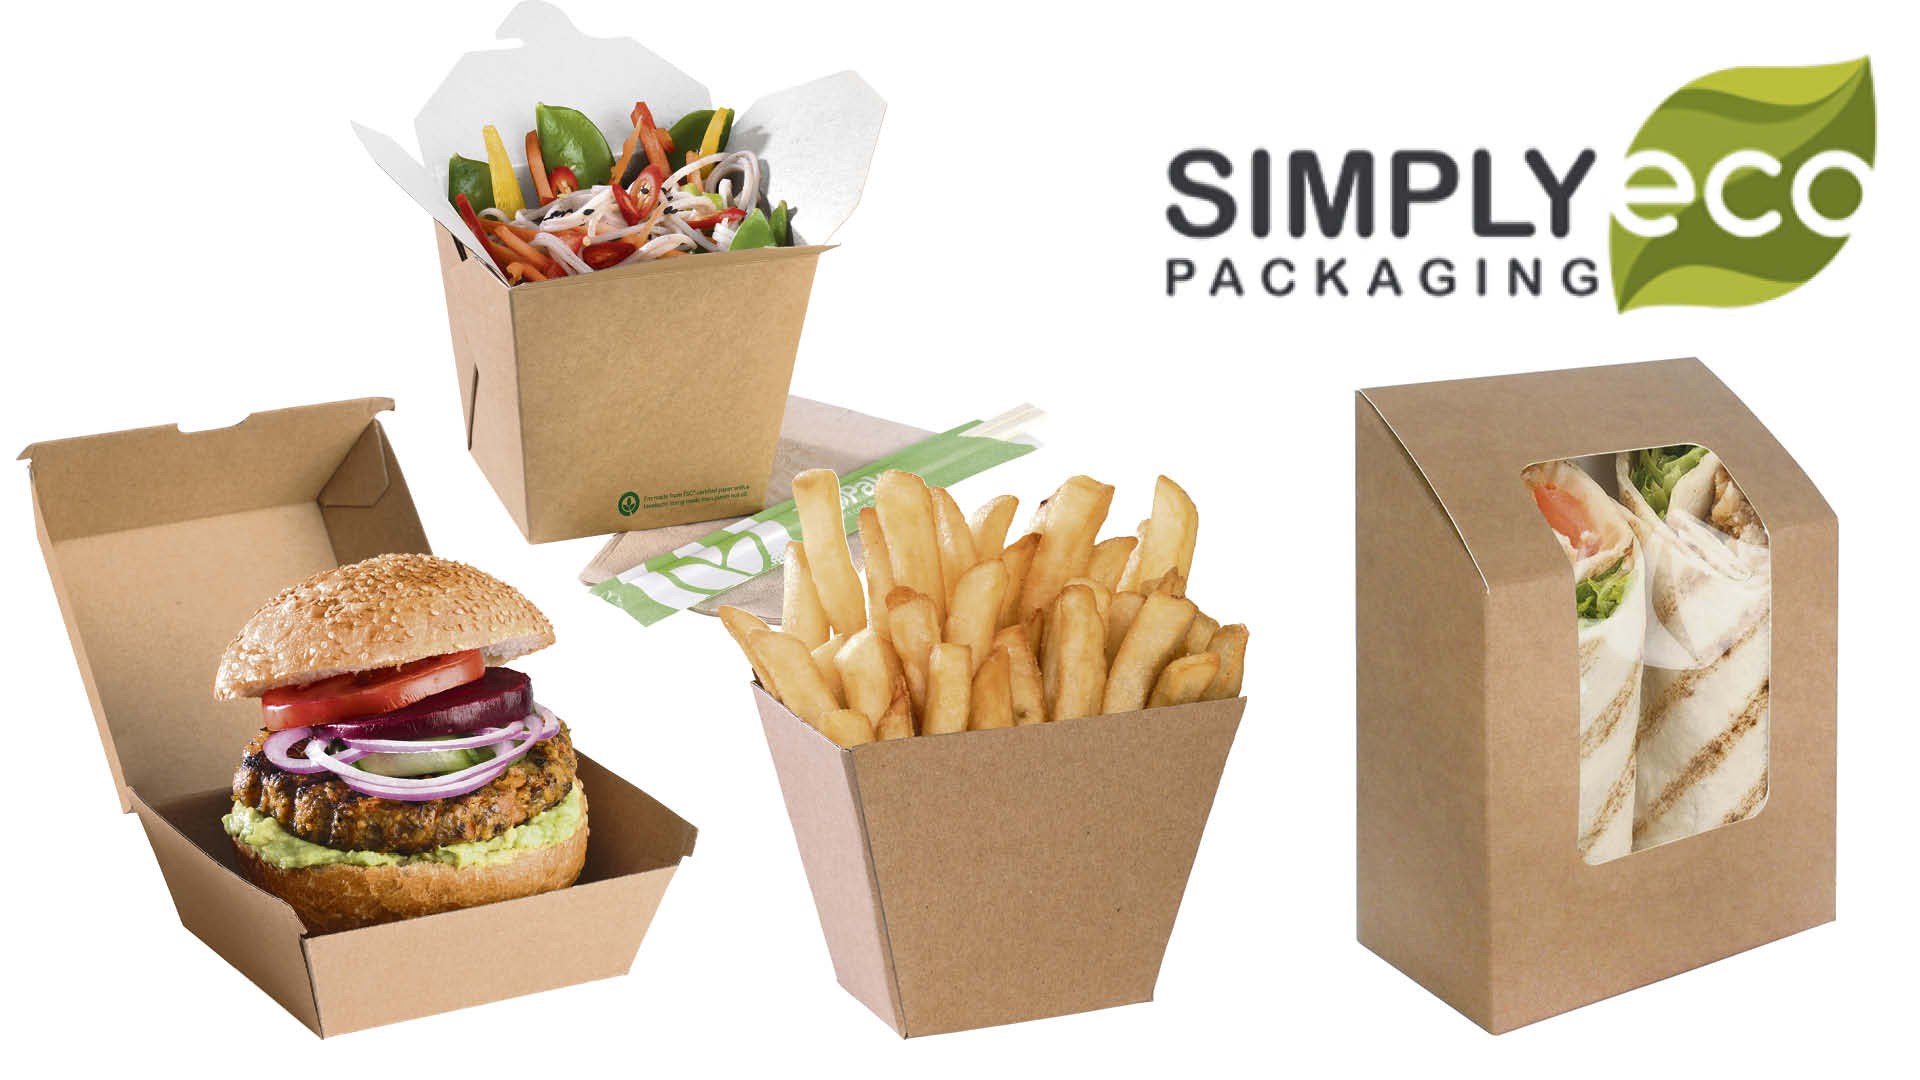 Win eco-friendly food and drink packaging Worth £250!